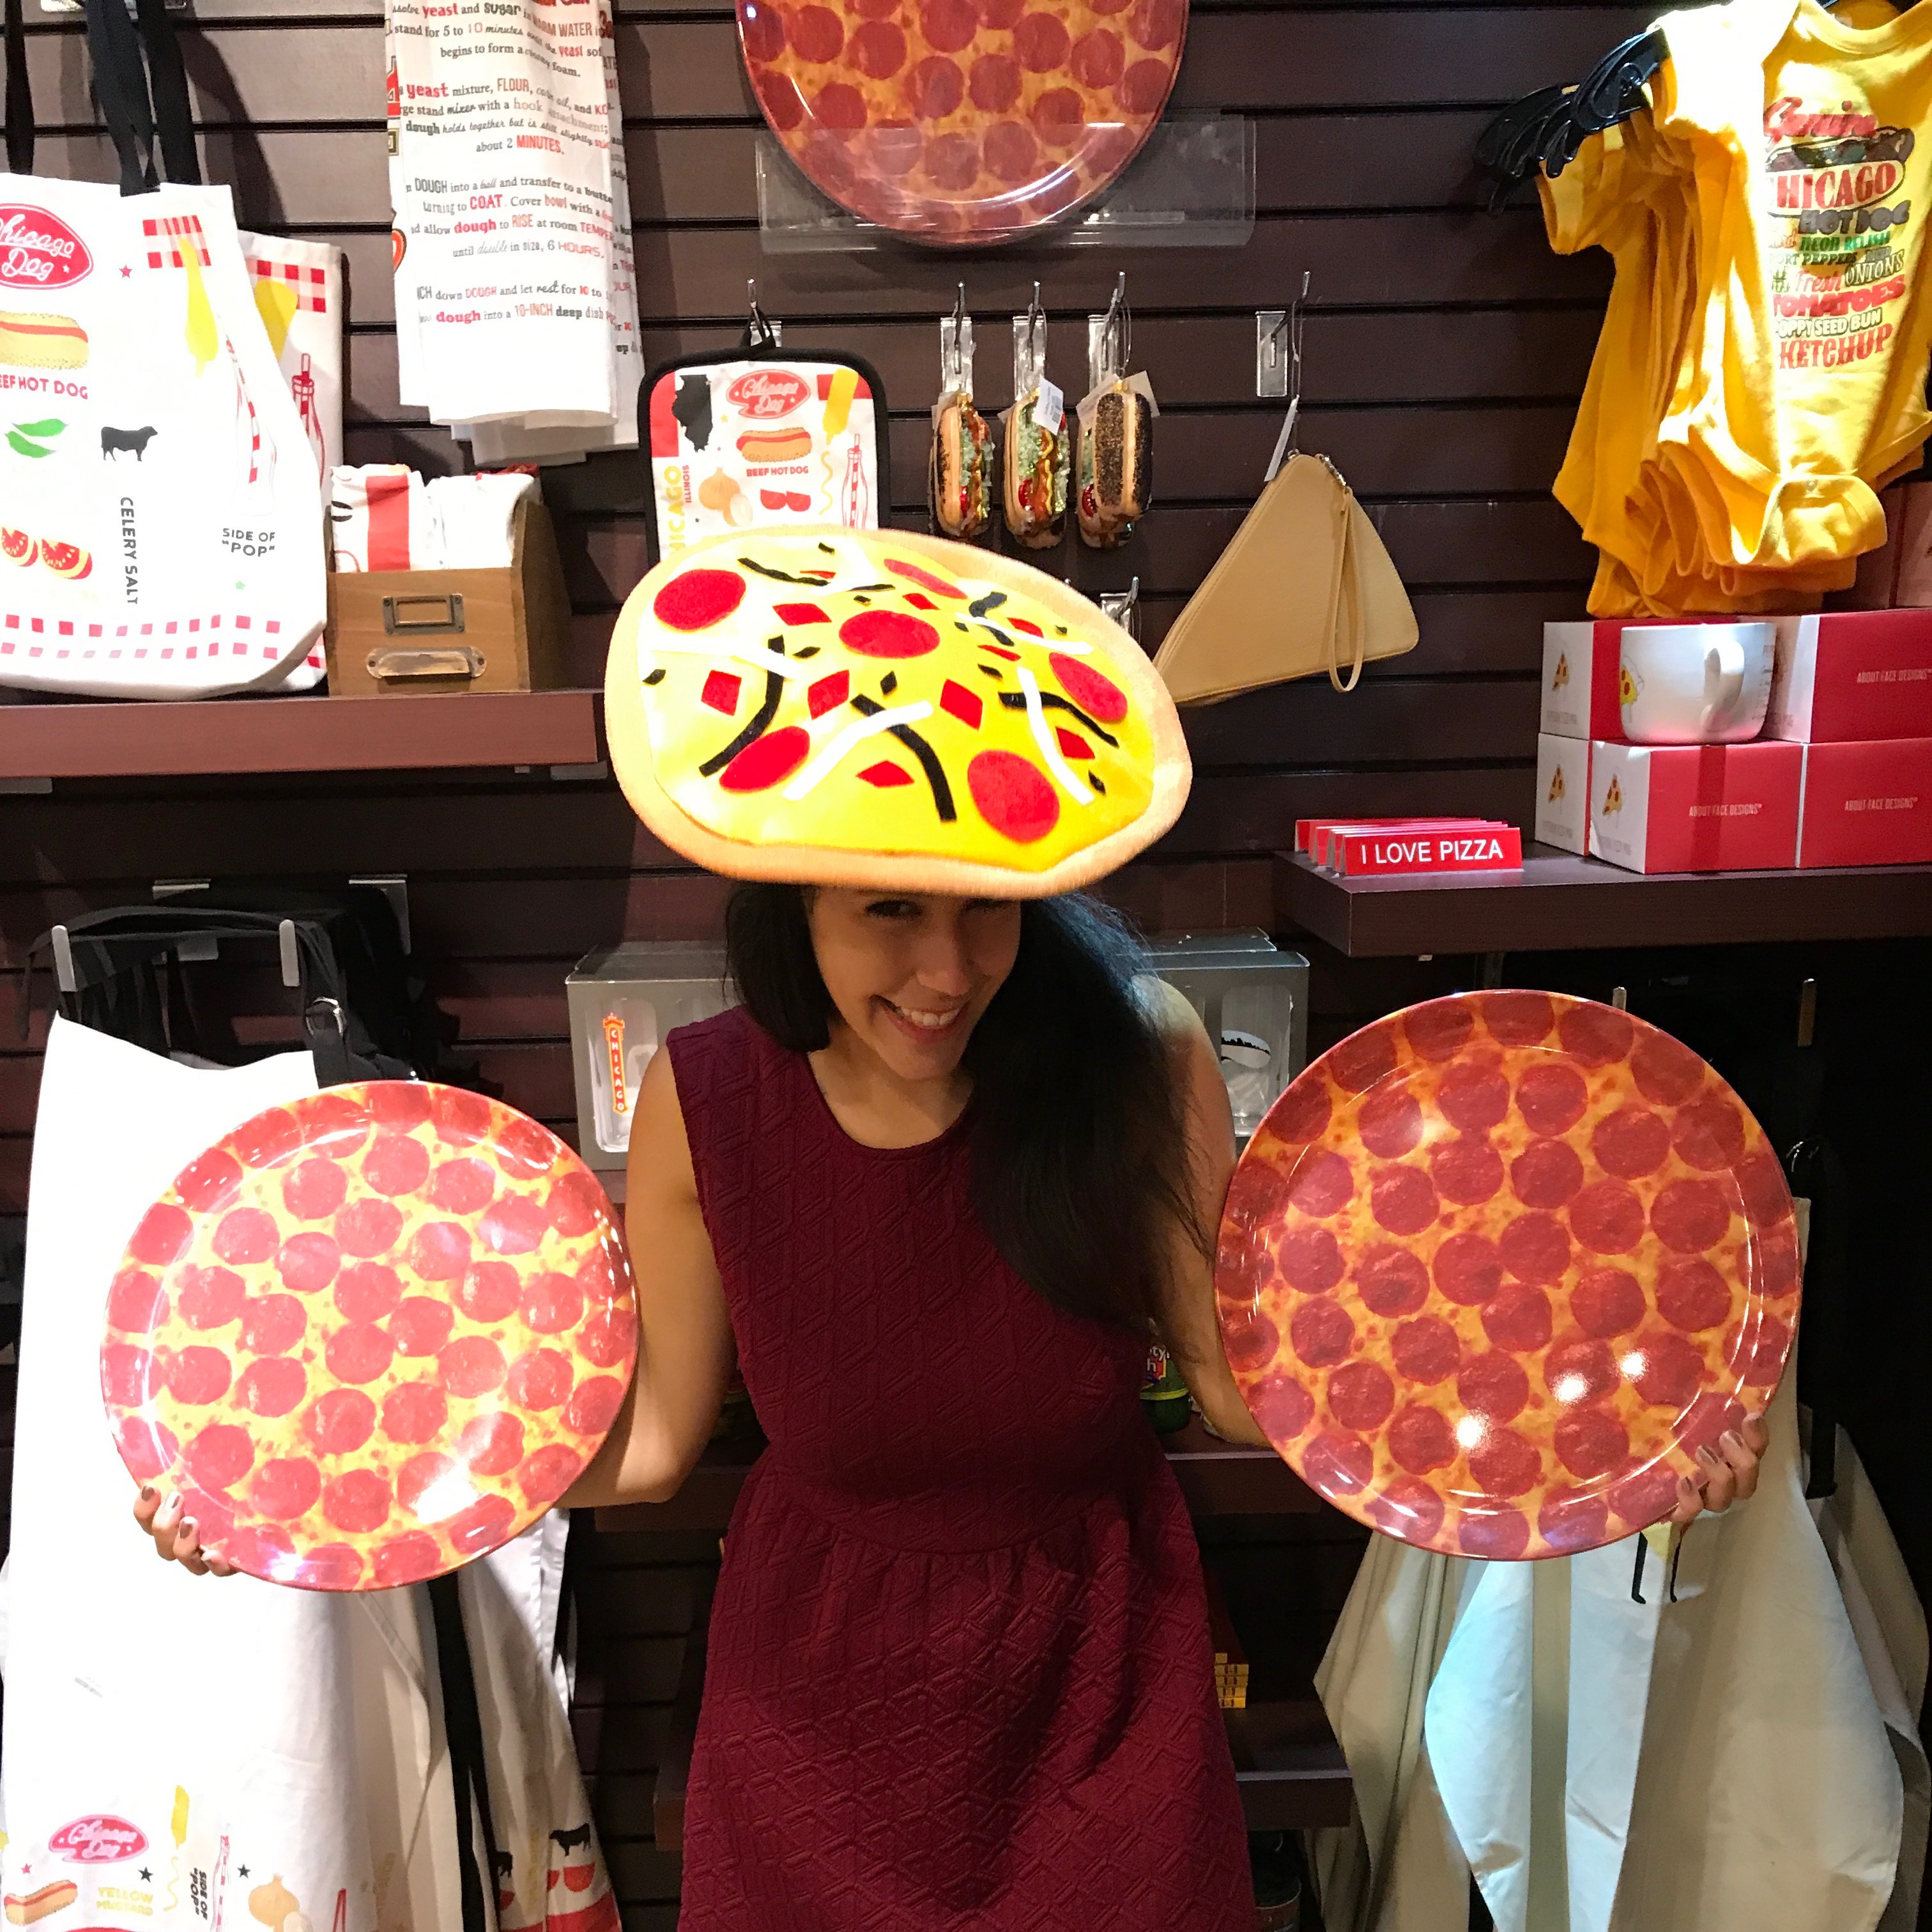 Woman holding up two fake pizzas wearing a pizza hat in front of a background of pizza souvenirs (They probably don't like pizza in Chicago)